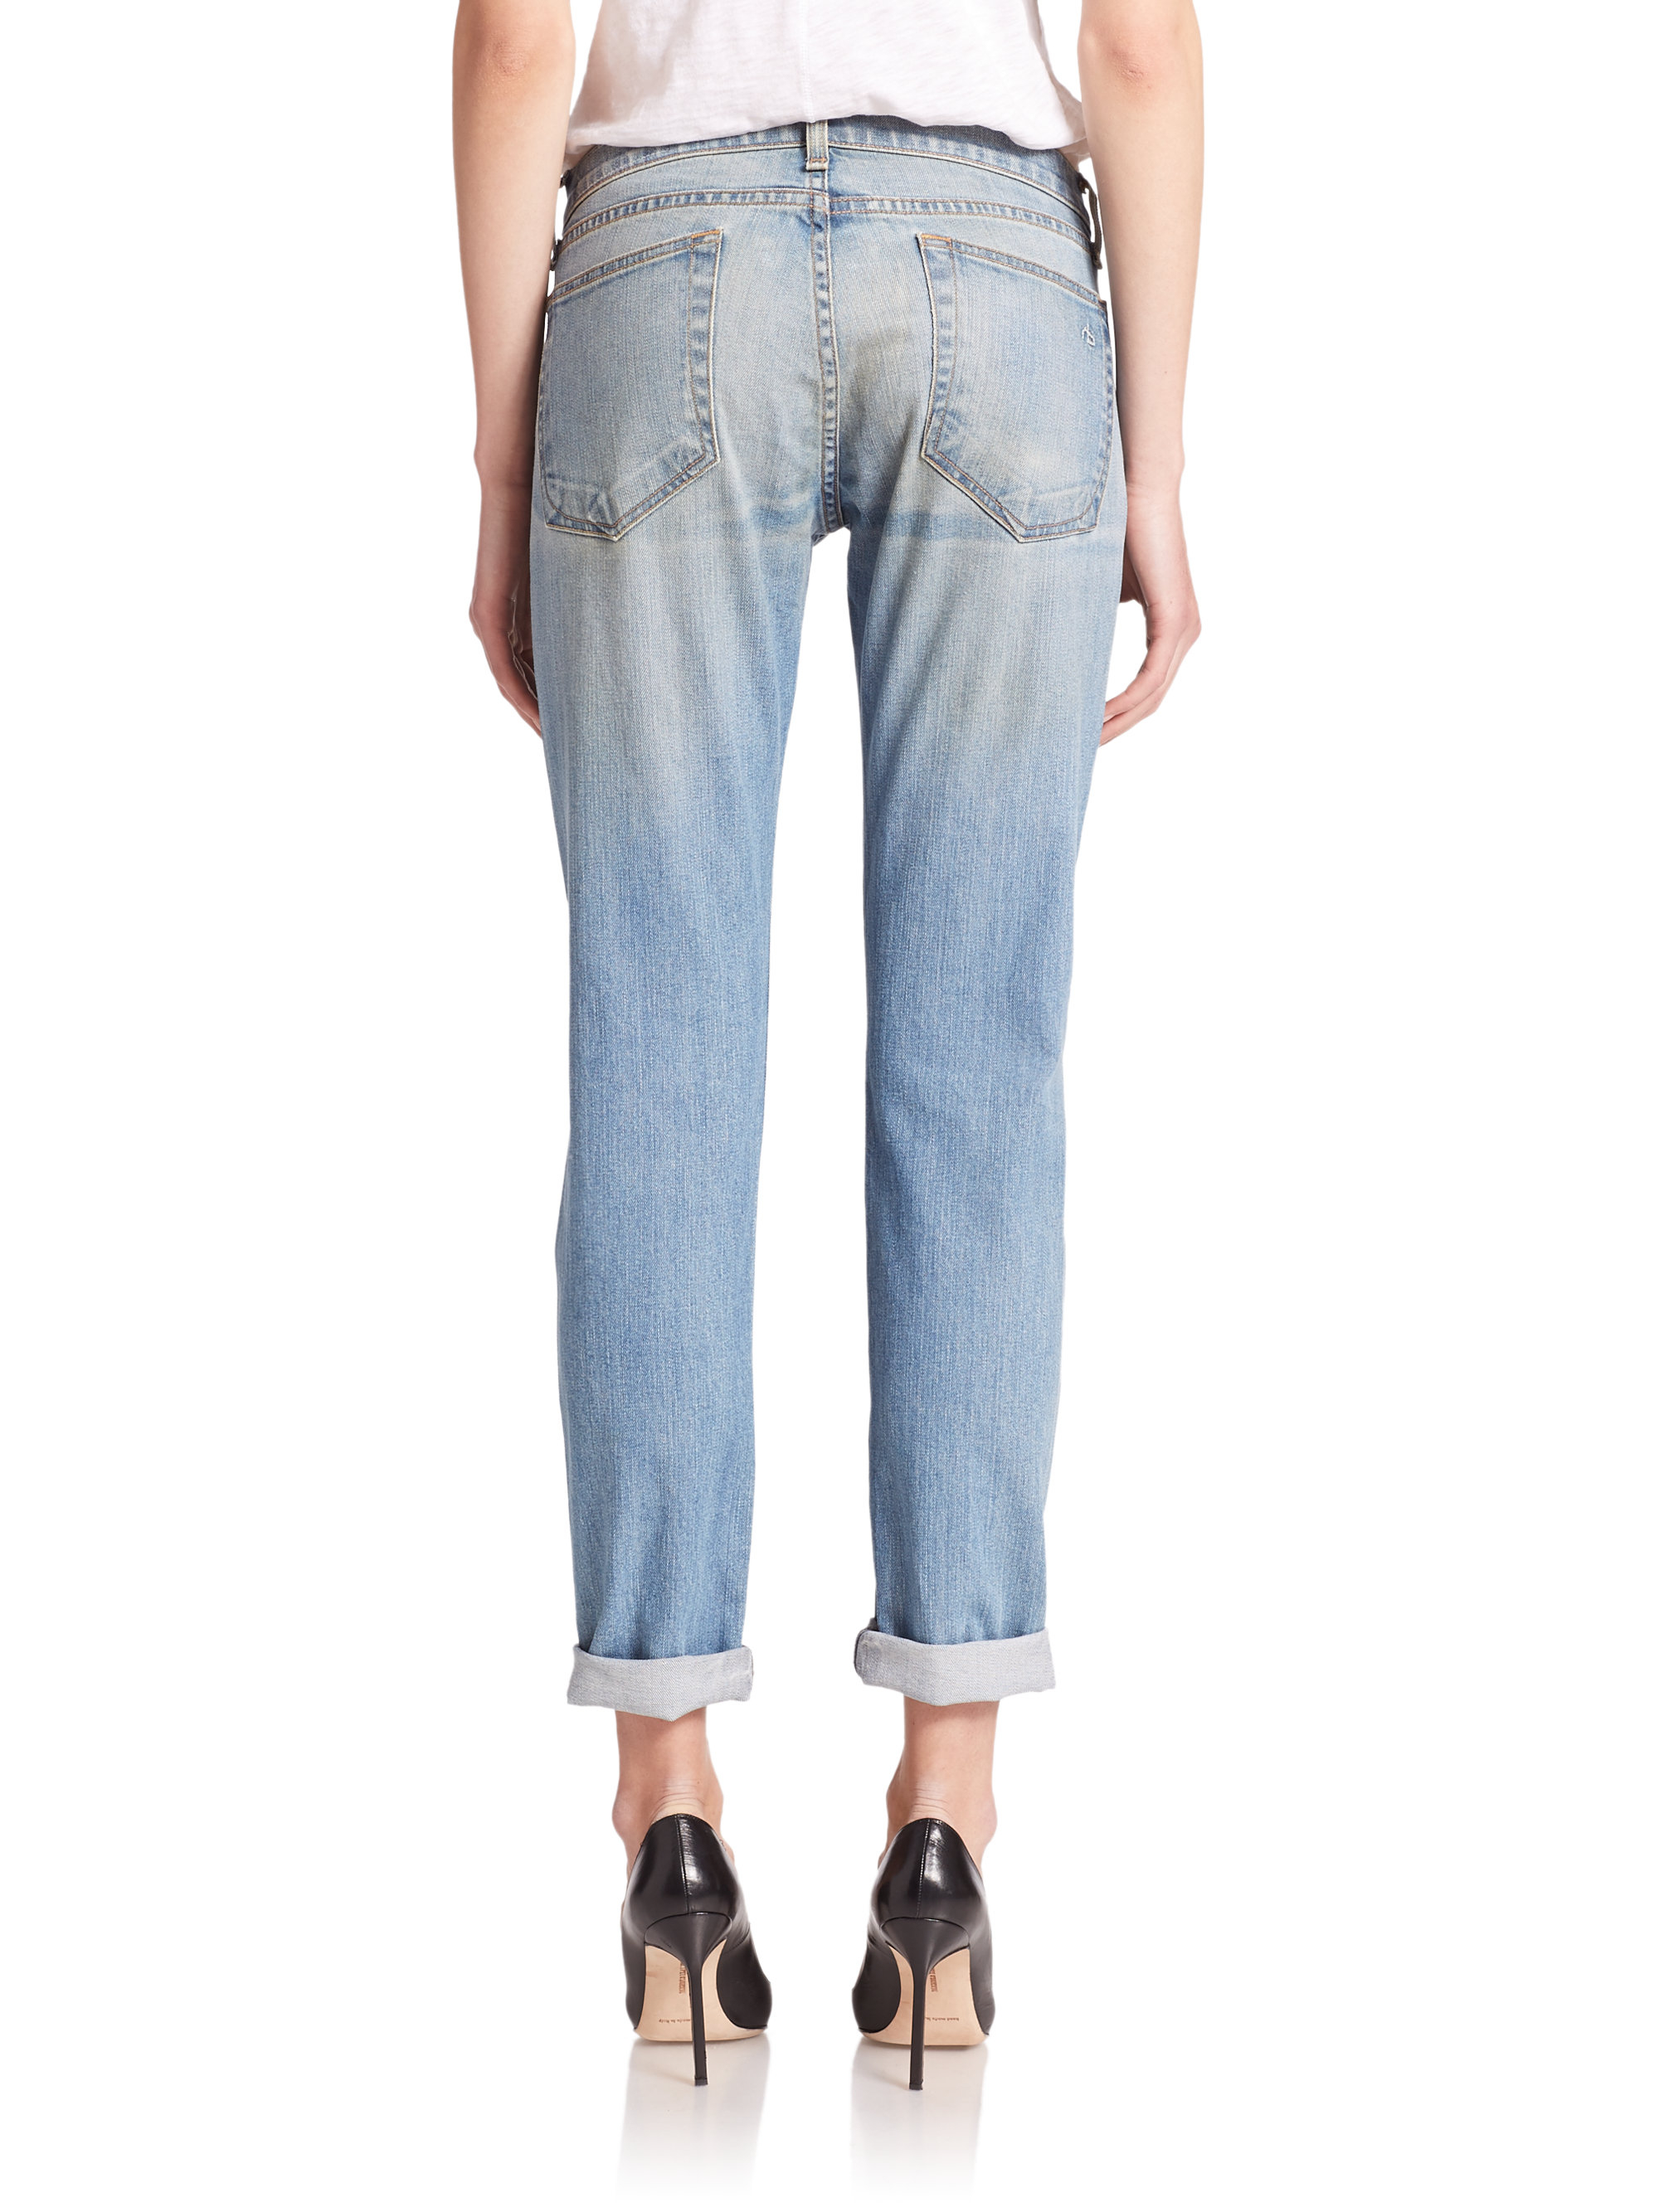 11fb783bd65 Rag & Bone The Dre Skinny Boyfriend Jeans in Blue - Lyst